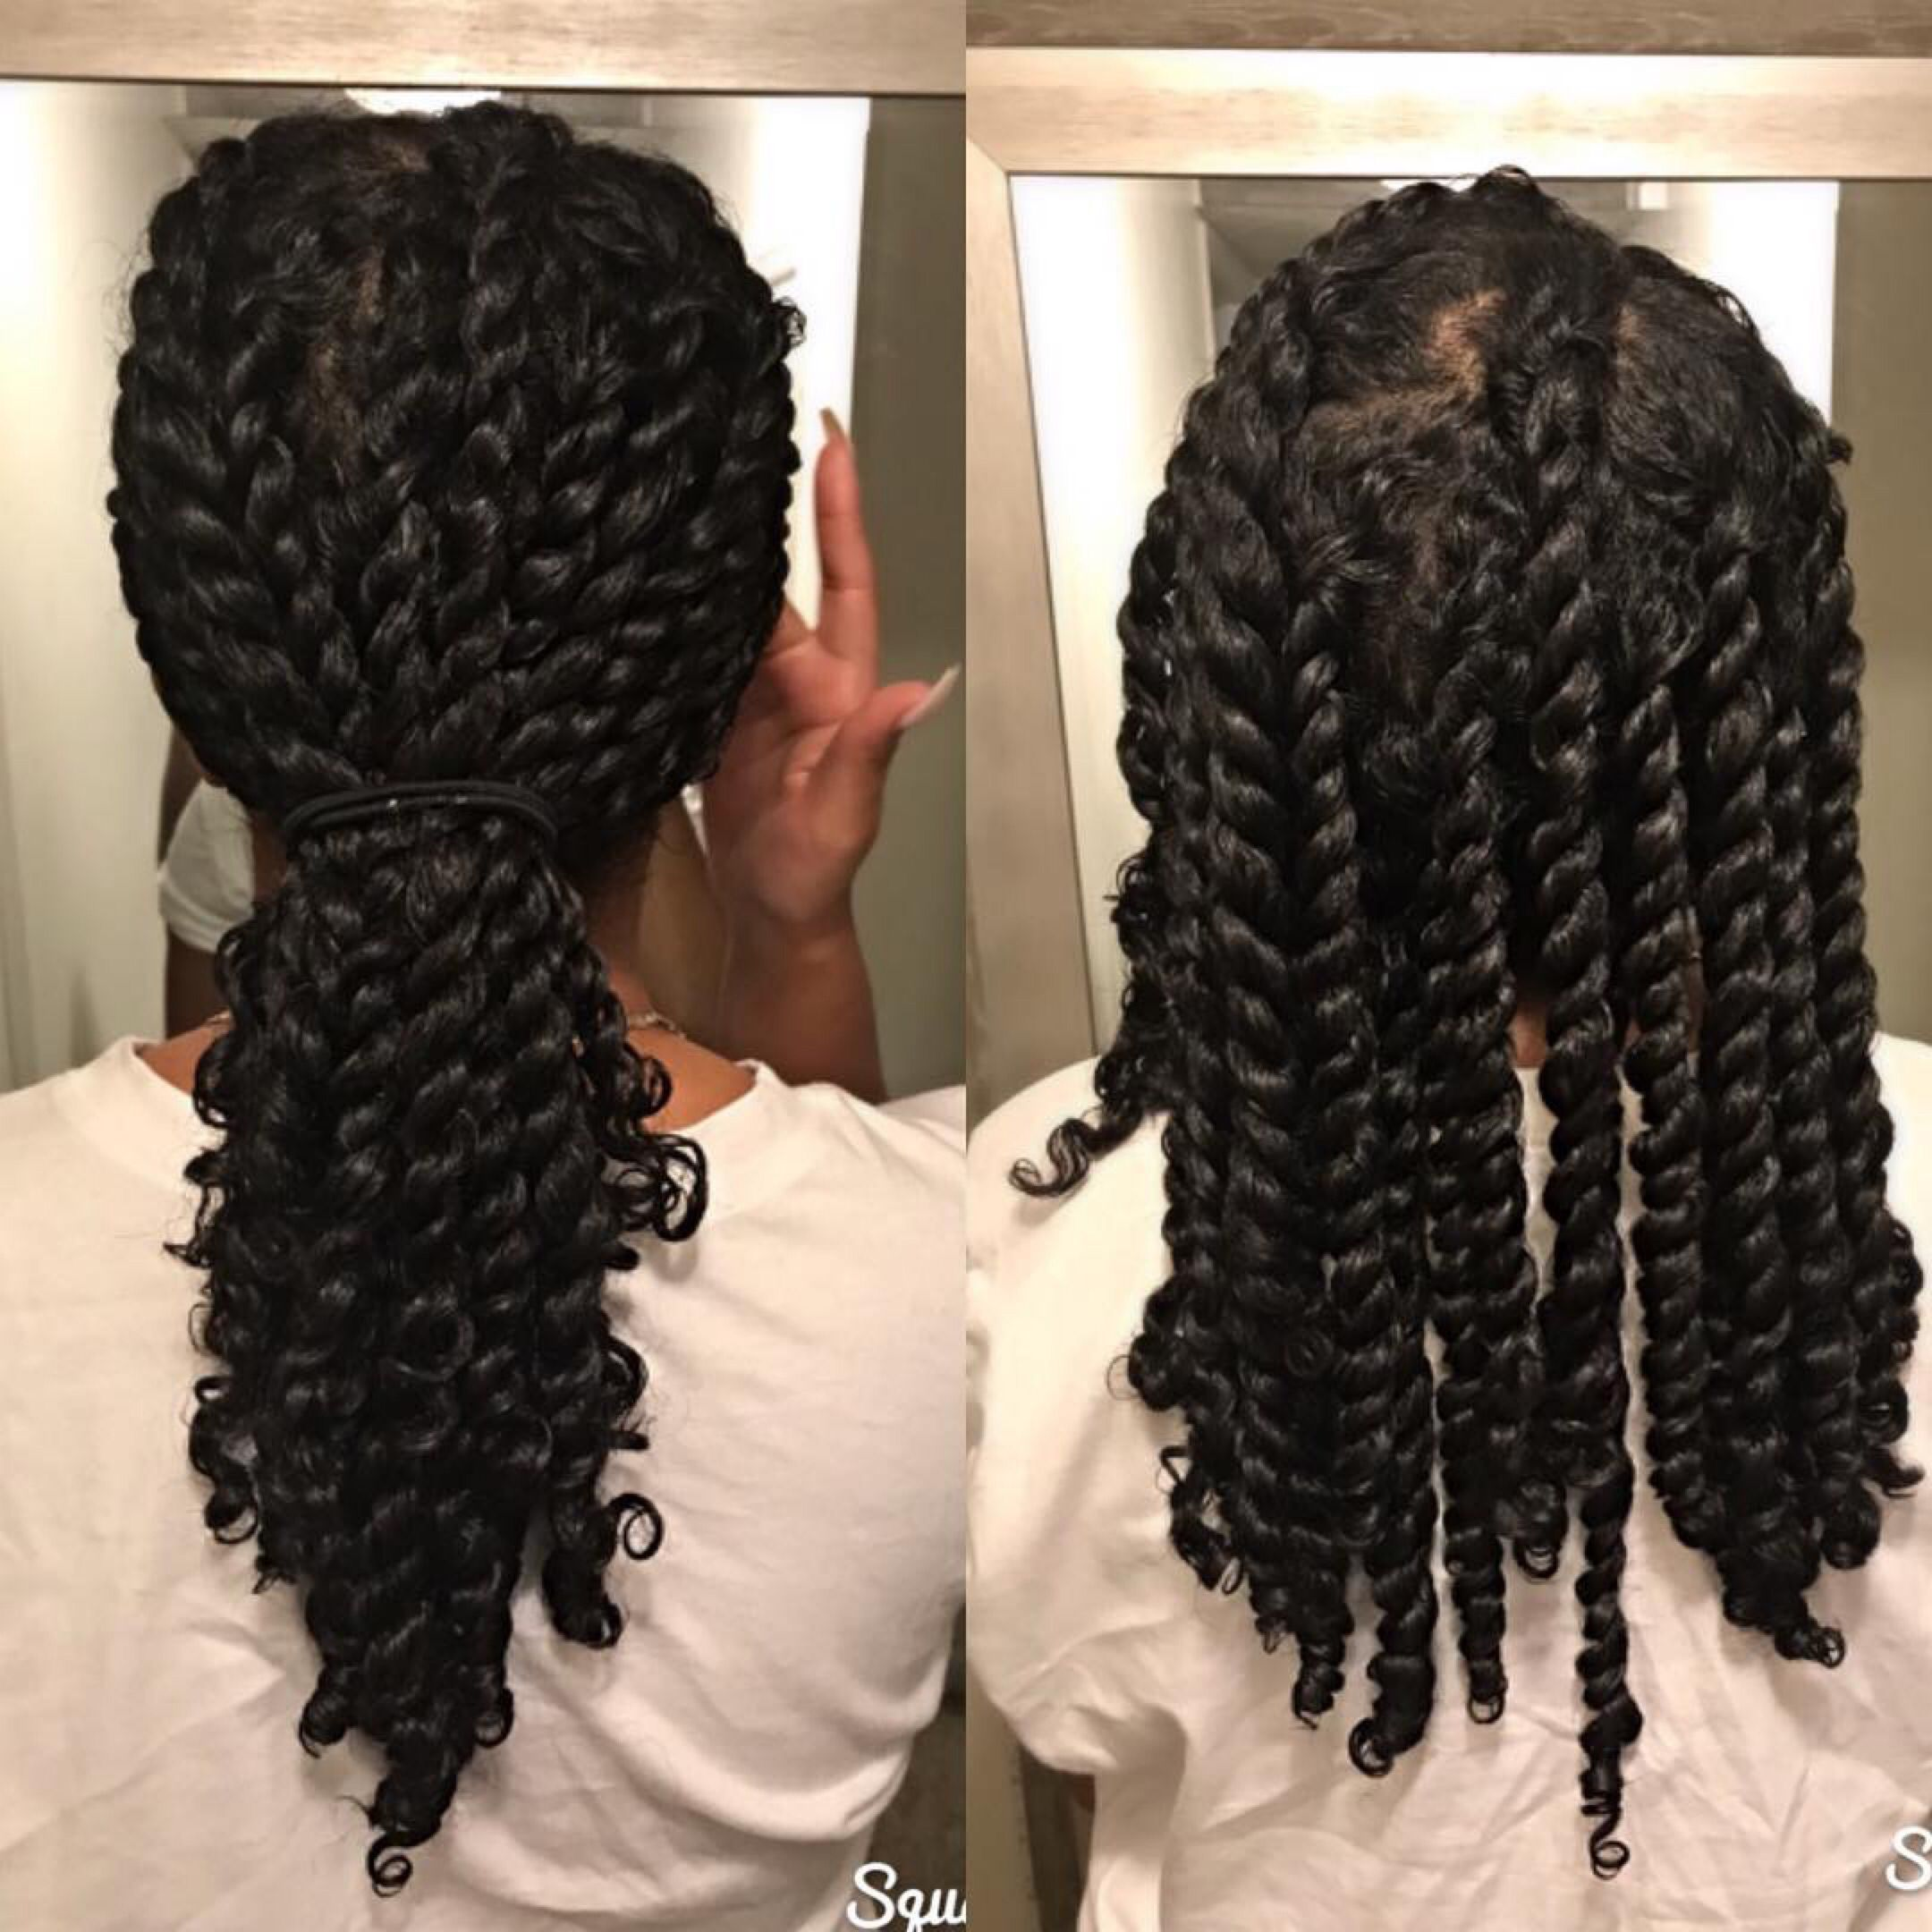 8 Super Cute Protective Styles For Winter Protective Hairstyles For Natural Hair Natural Hair Twists Long Natural Hair